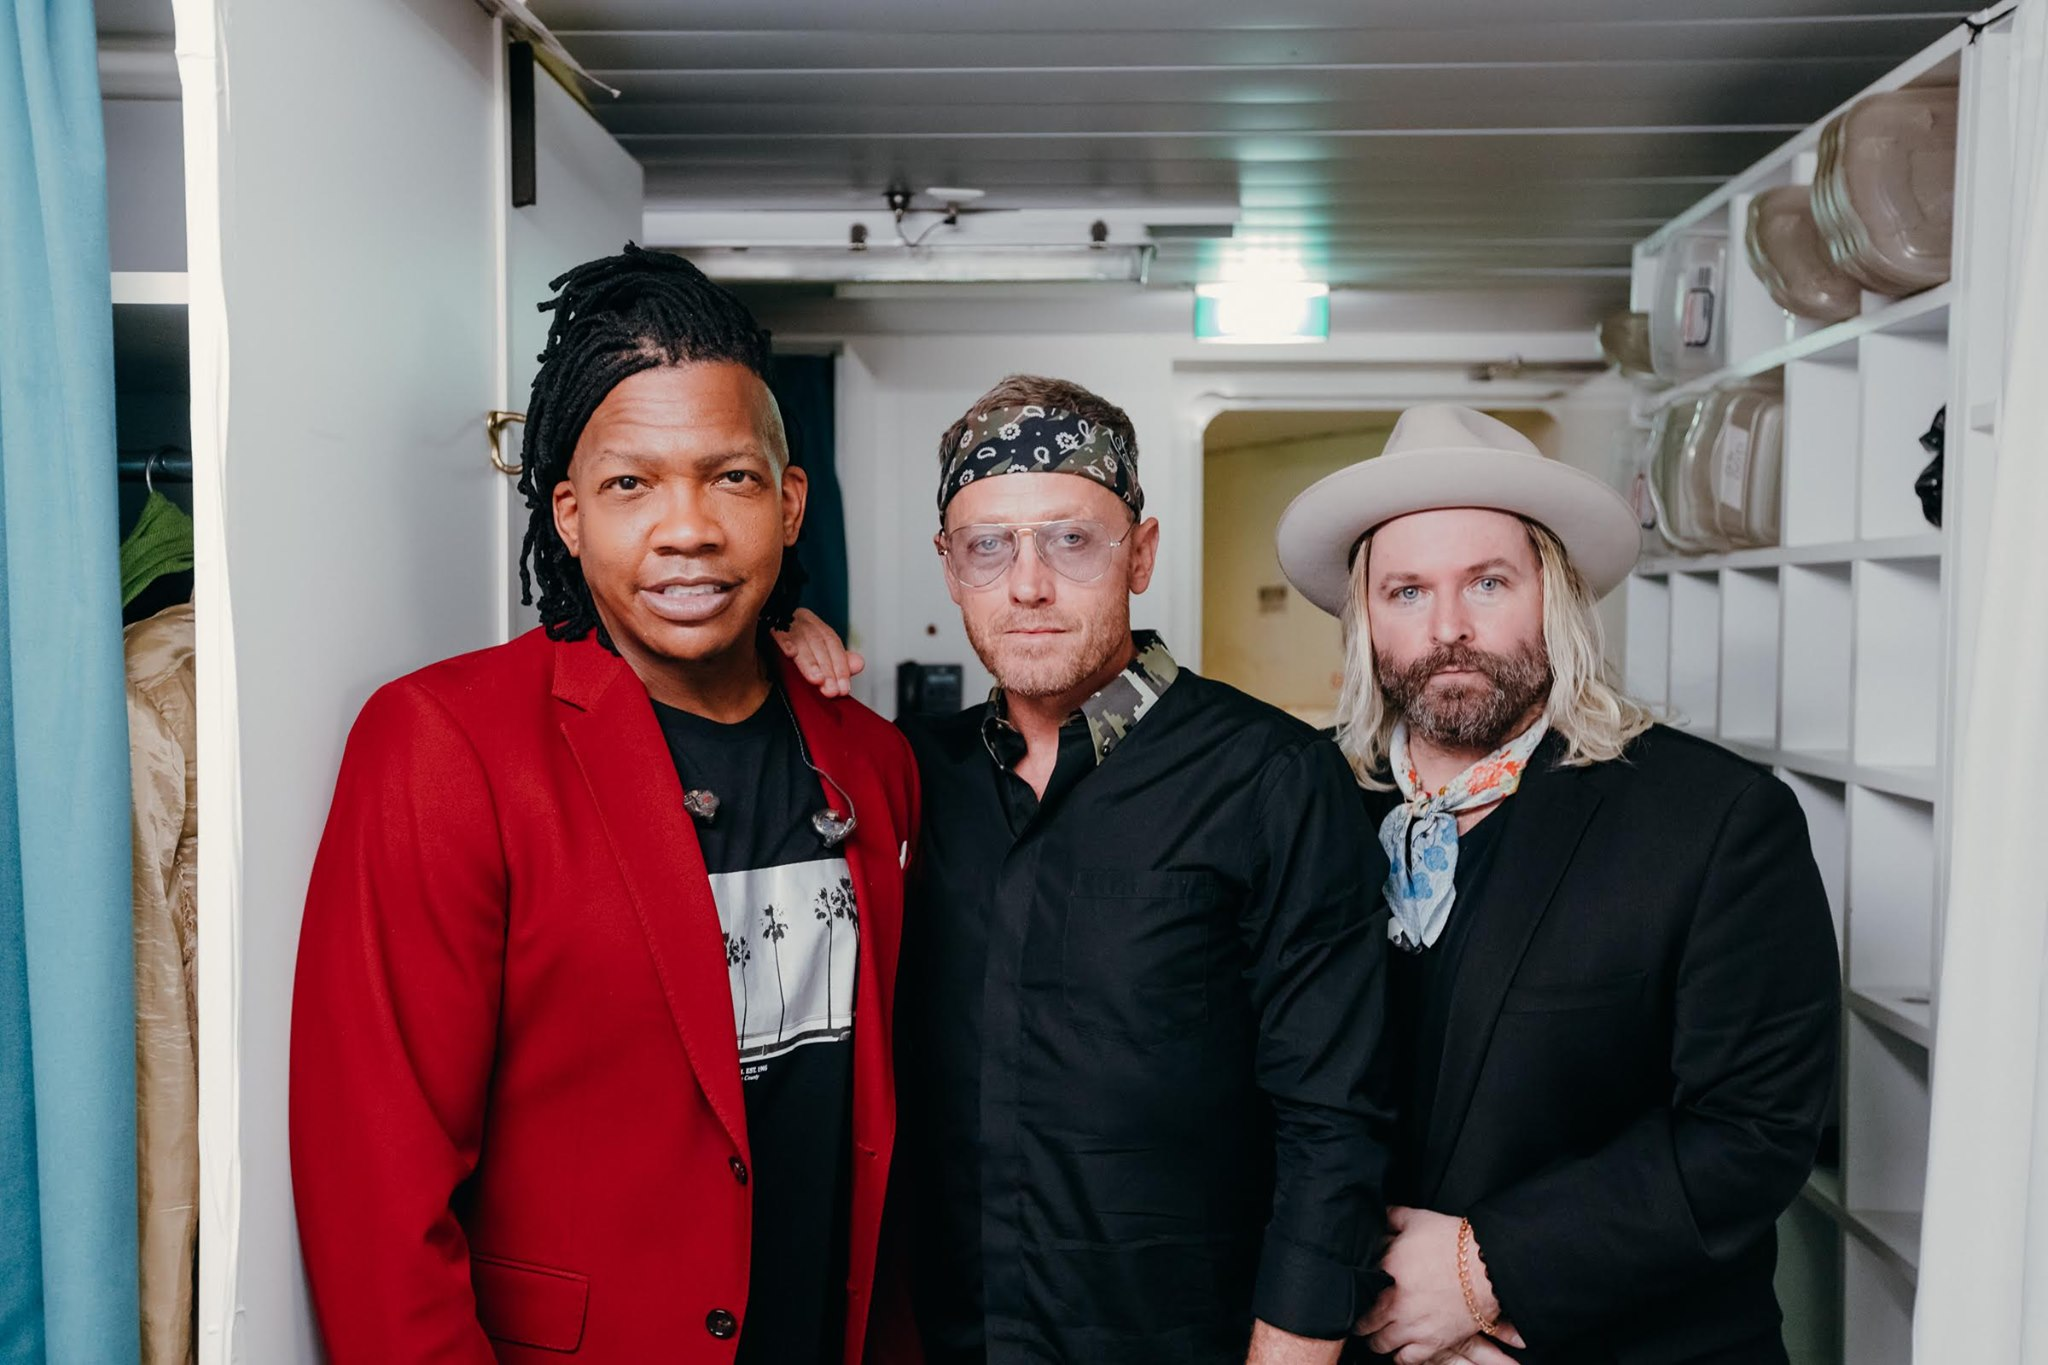 Michael Tait Announces dcTalk Will Start Touring Again In 2020